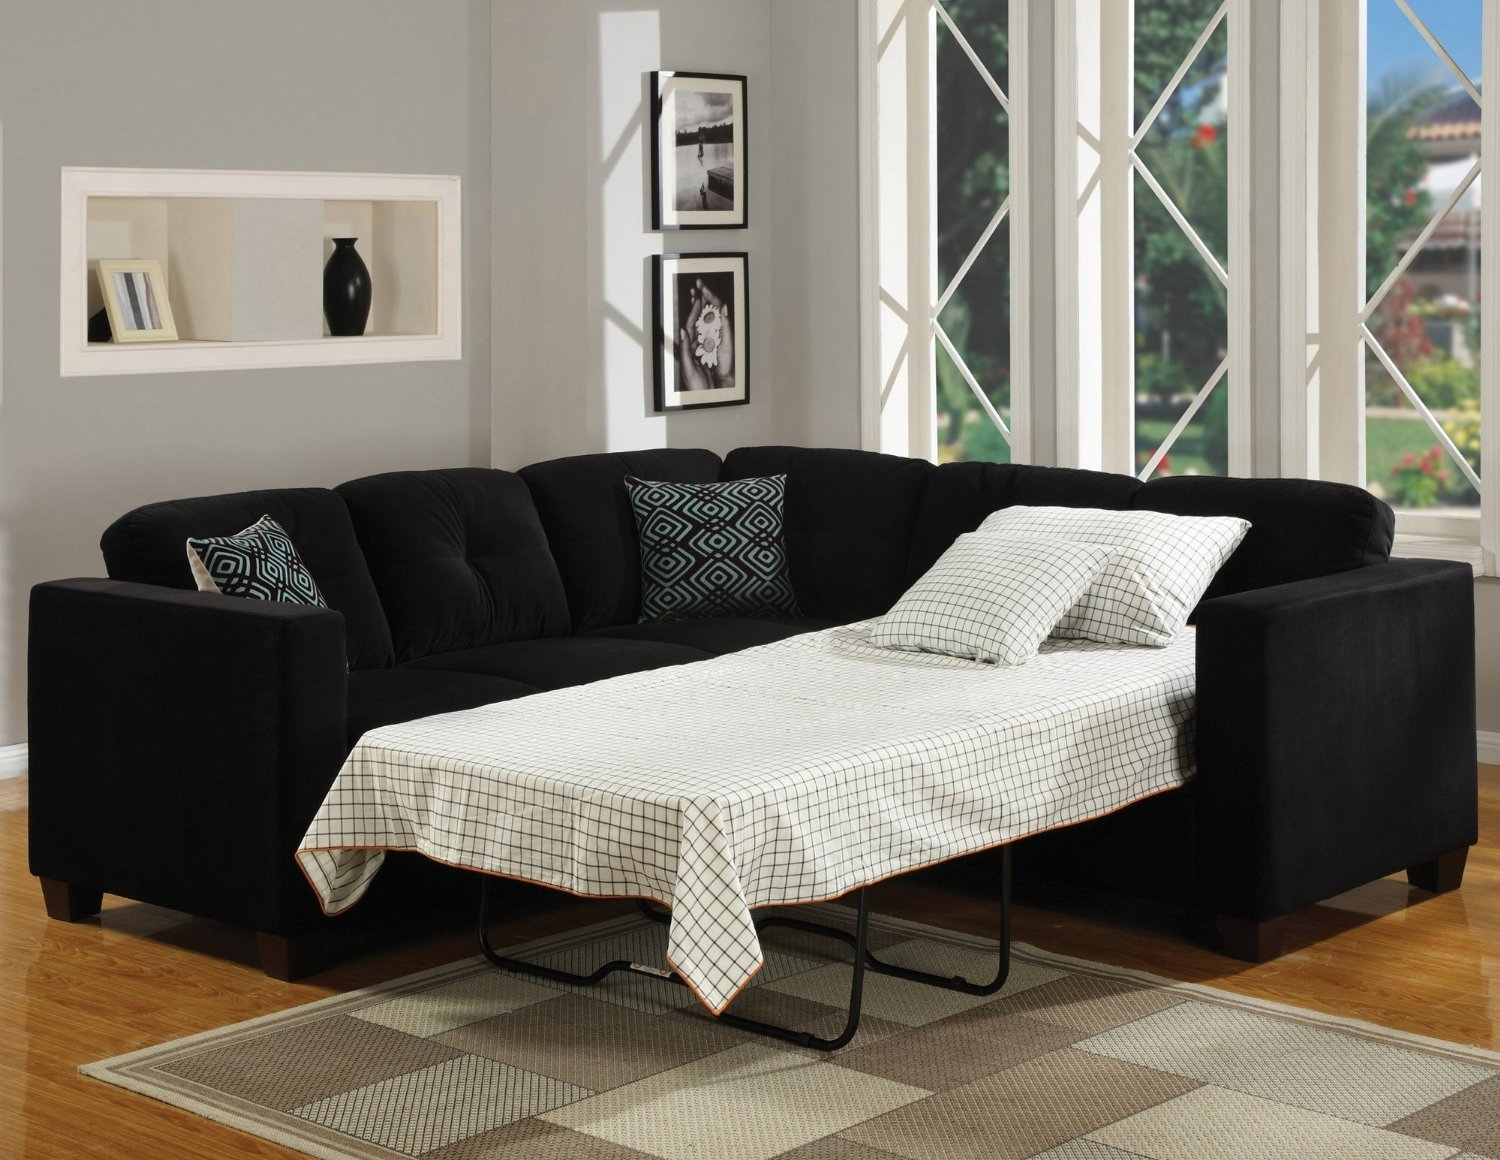 Post Sofa Impressive Home Design Regarding Black Sectional Sofa For Cheap (Image 11 of 15)